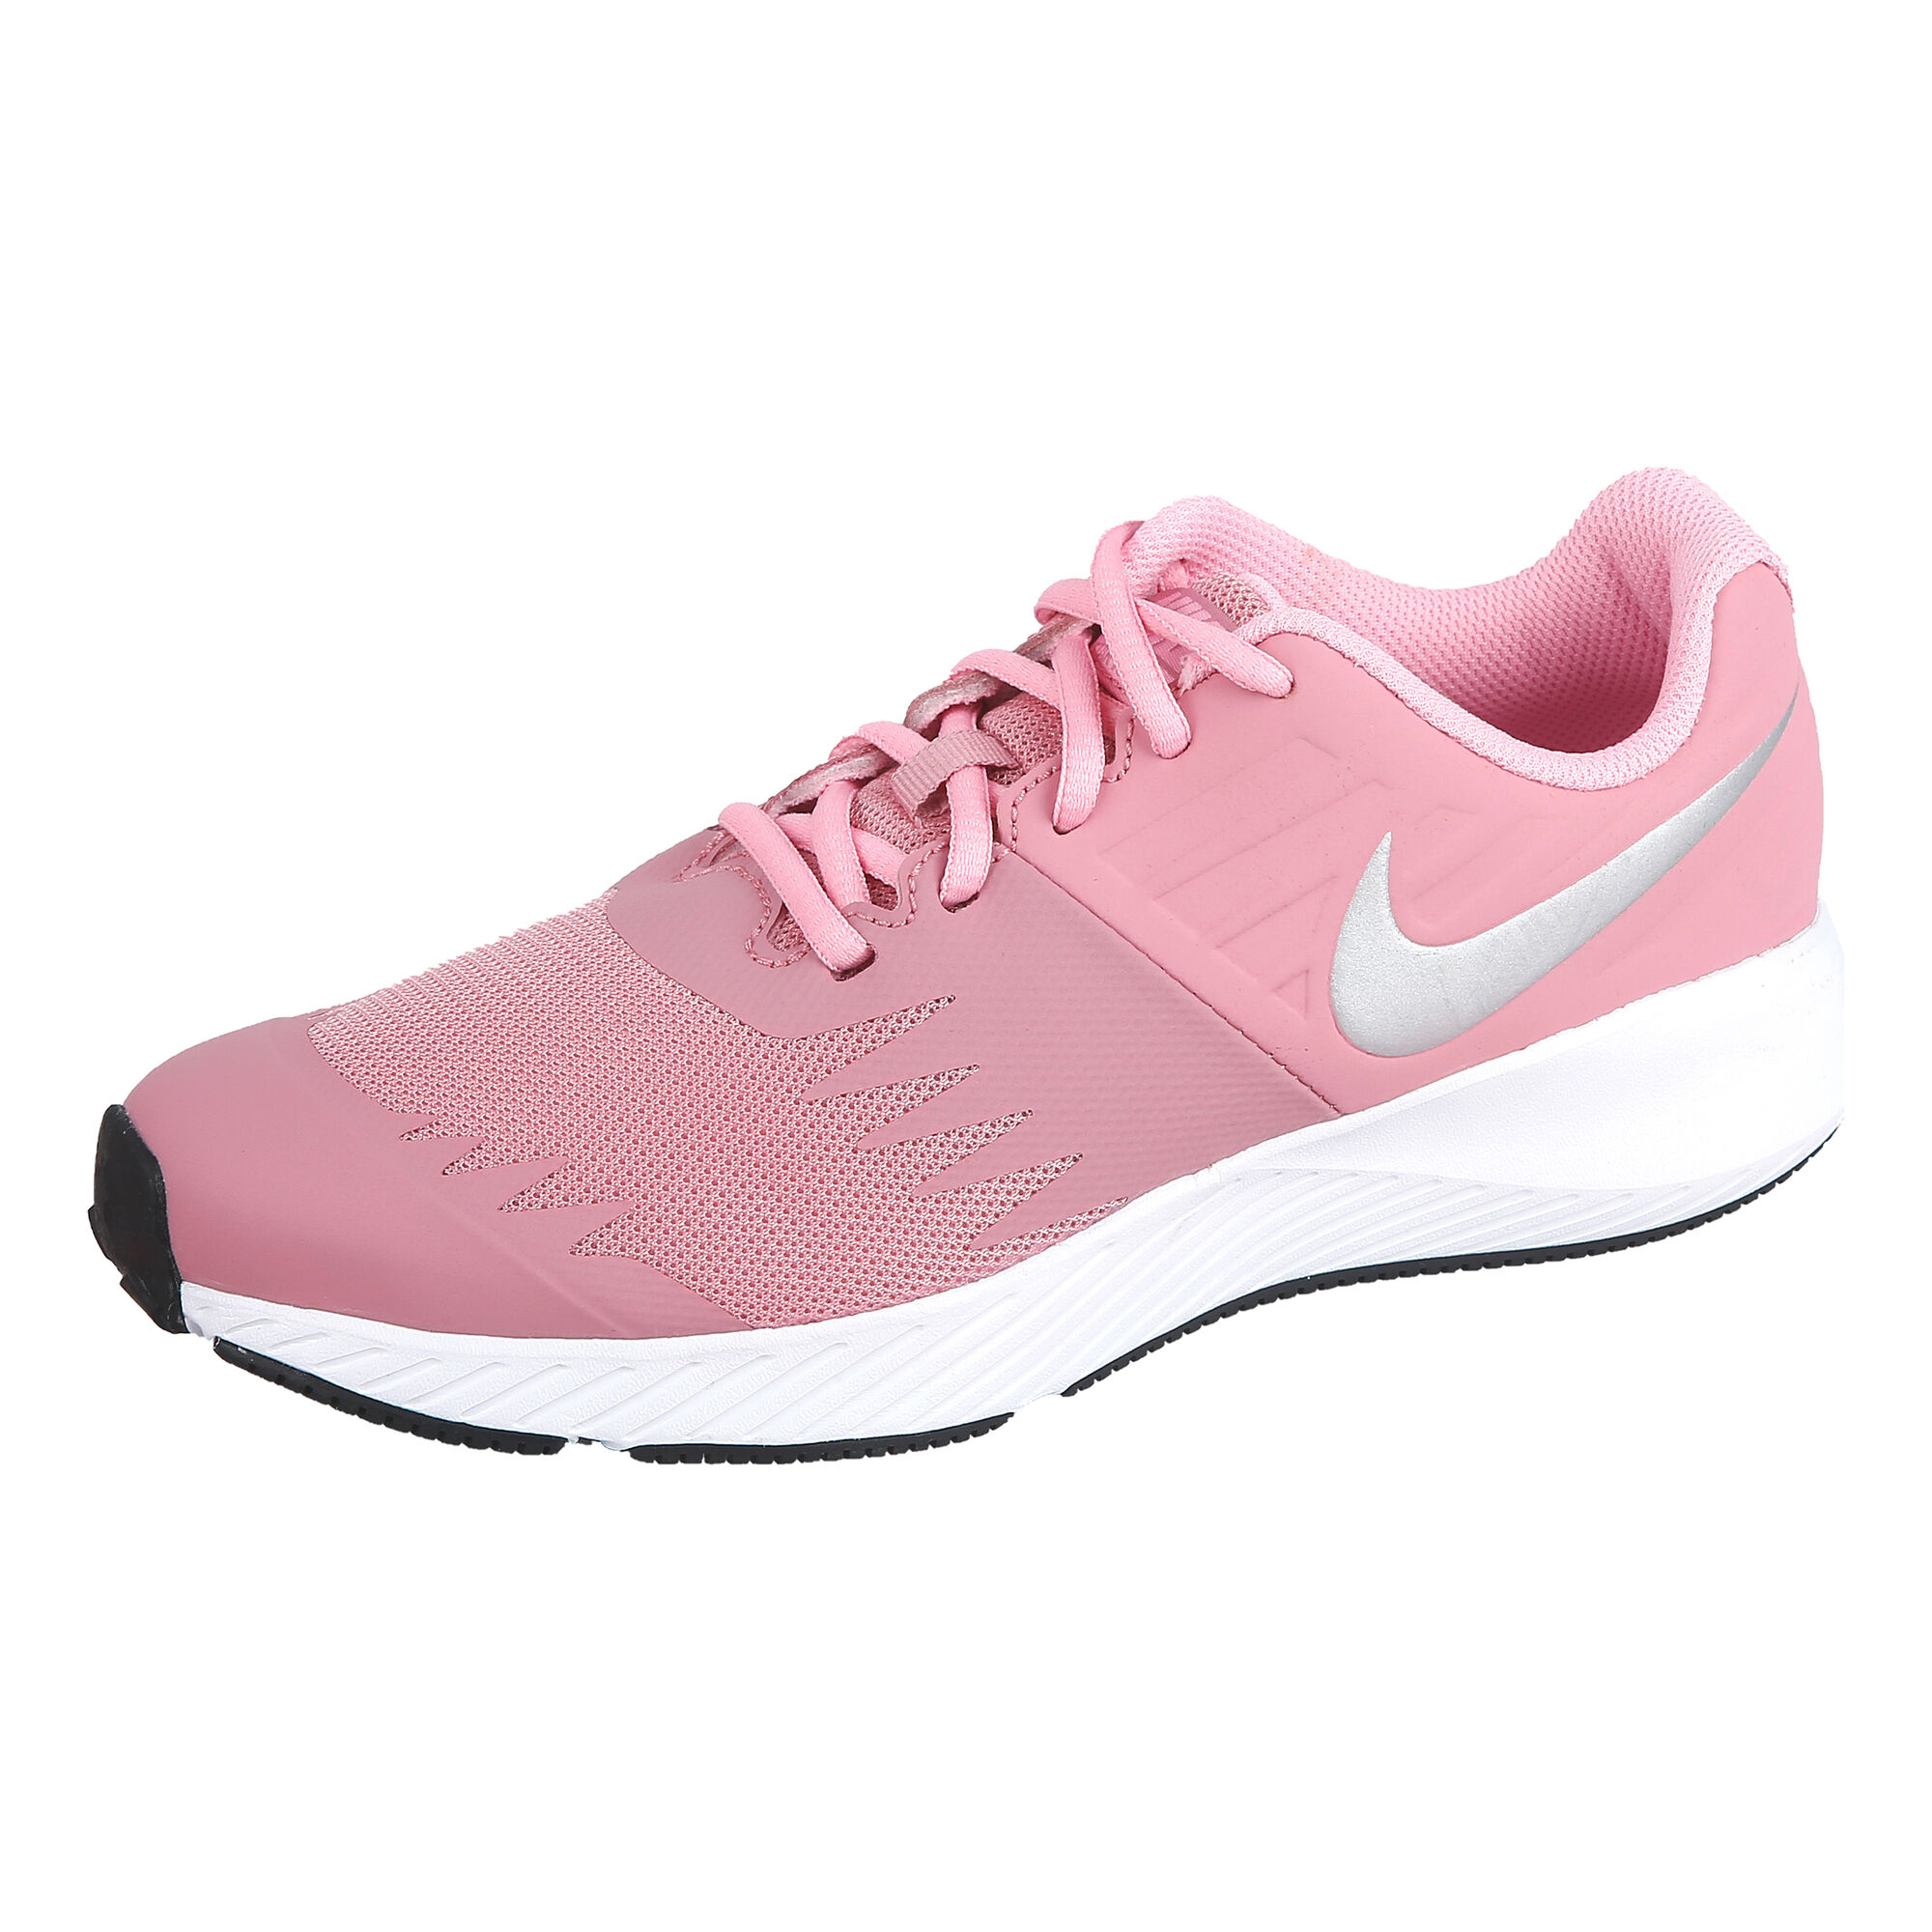 new product 0ad24 d4a1a buy Nike Star Runner (GS) Neutral Running Shoe Kids - Pink, Silver ...